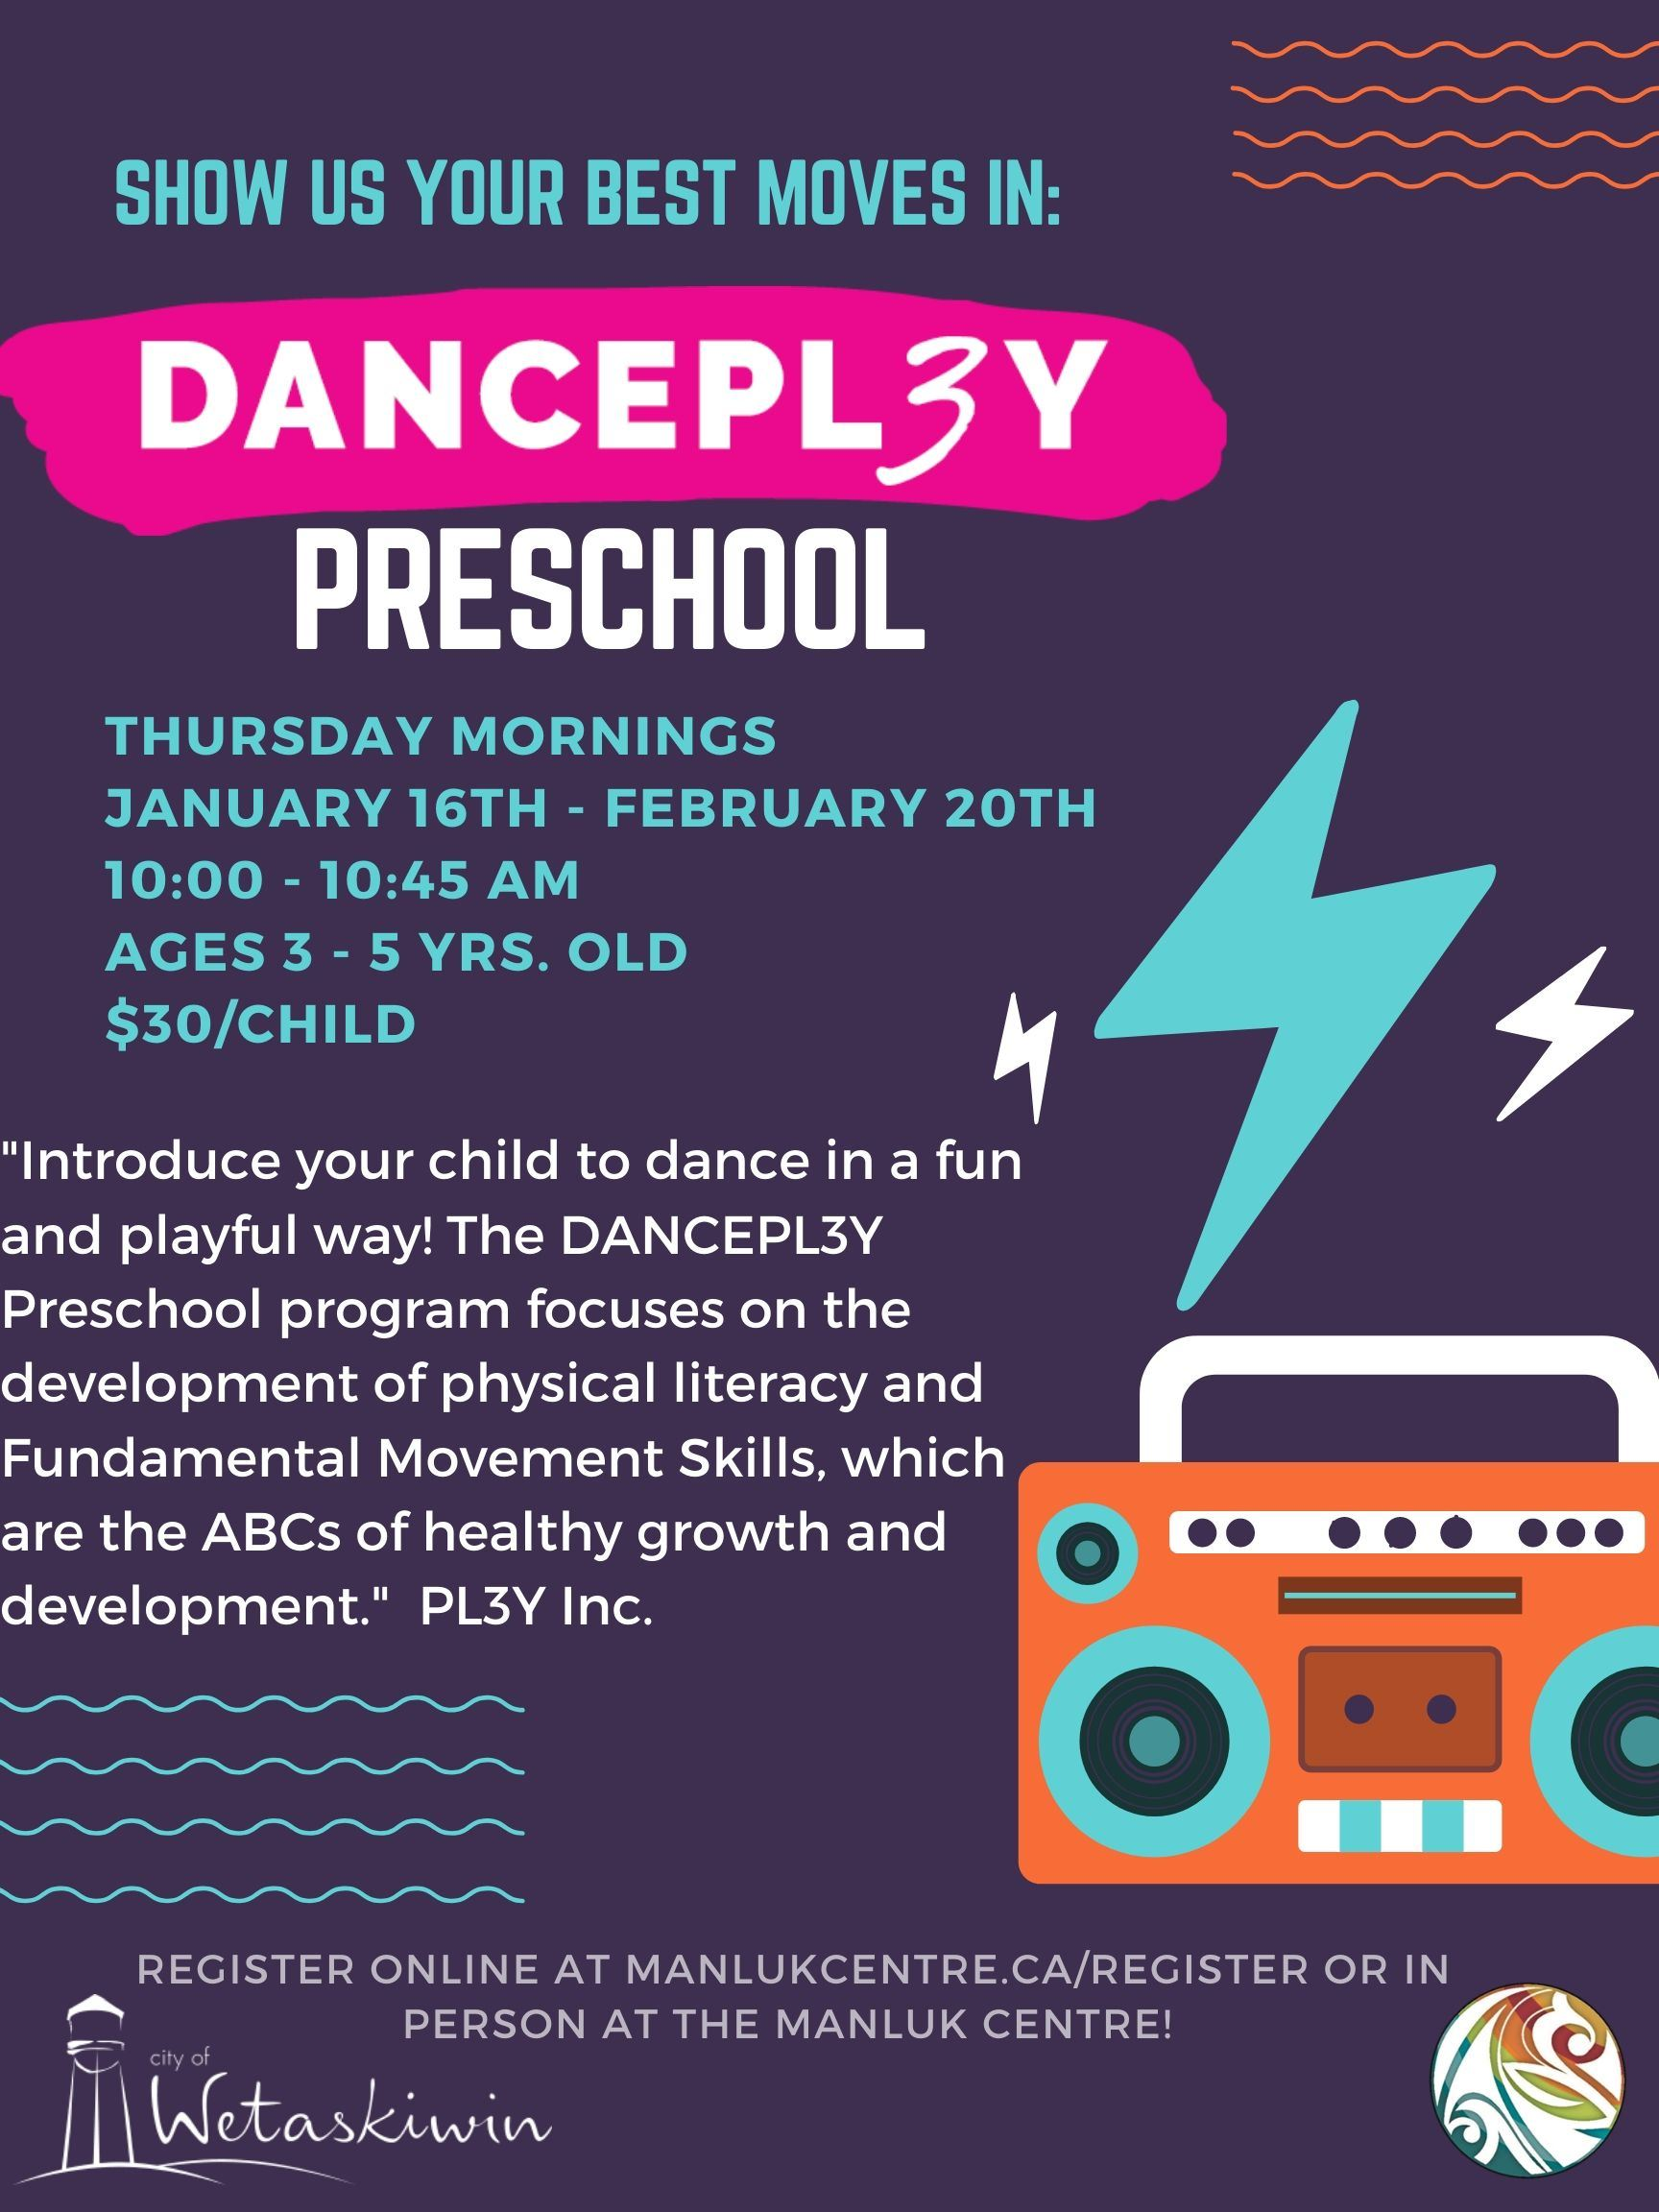 DANCEPL3Y Preschool - Jan 16 - Feb. 20 2020